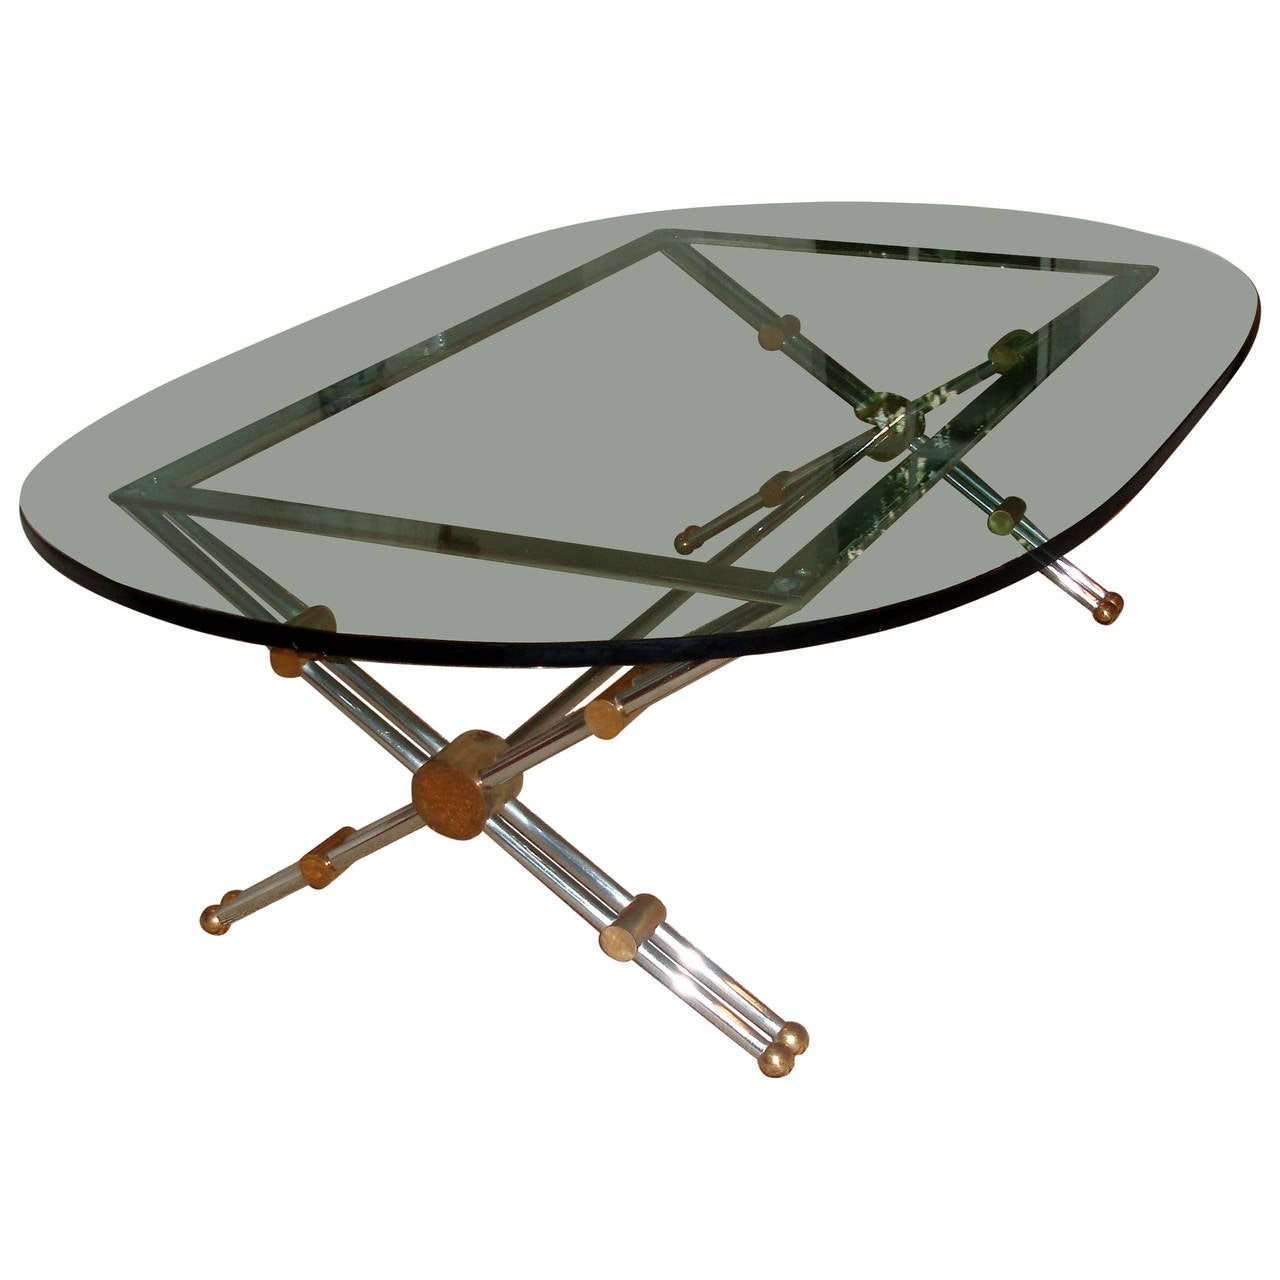 Modernist Glass Top Coffee Table For Sale At 1stdibs